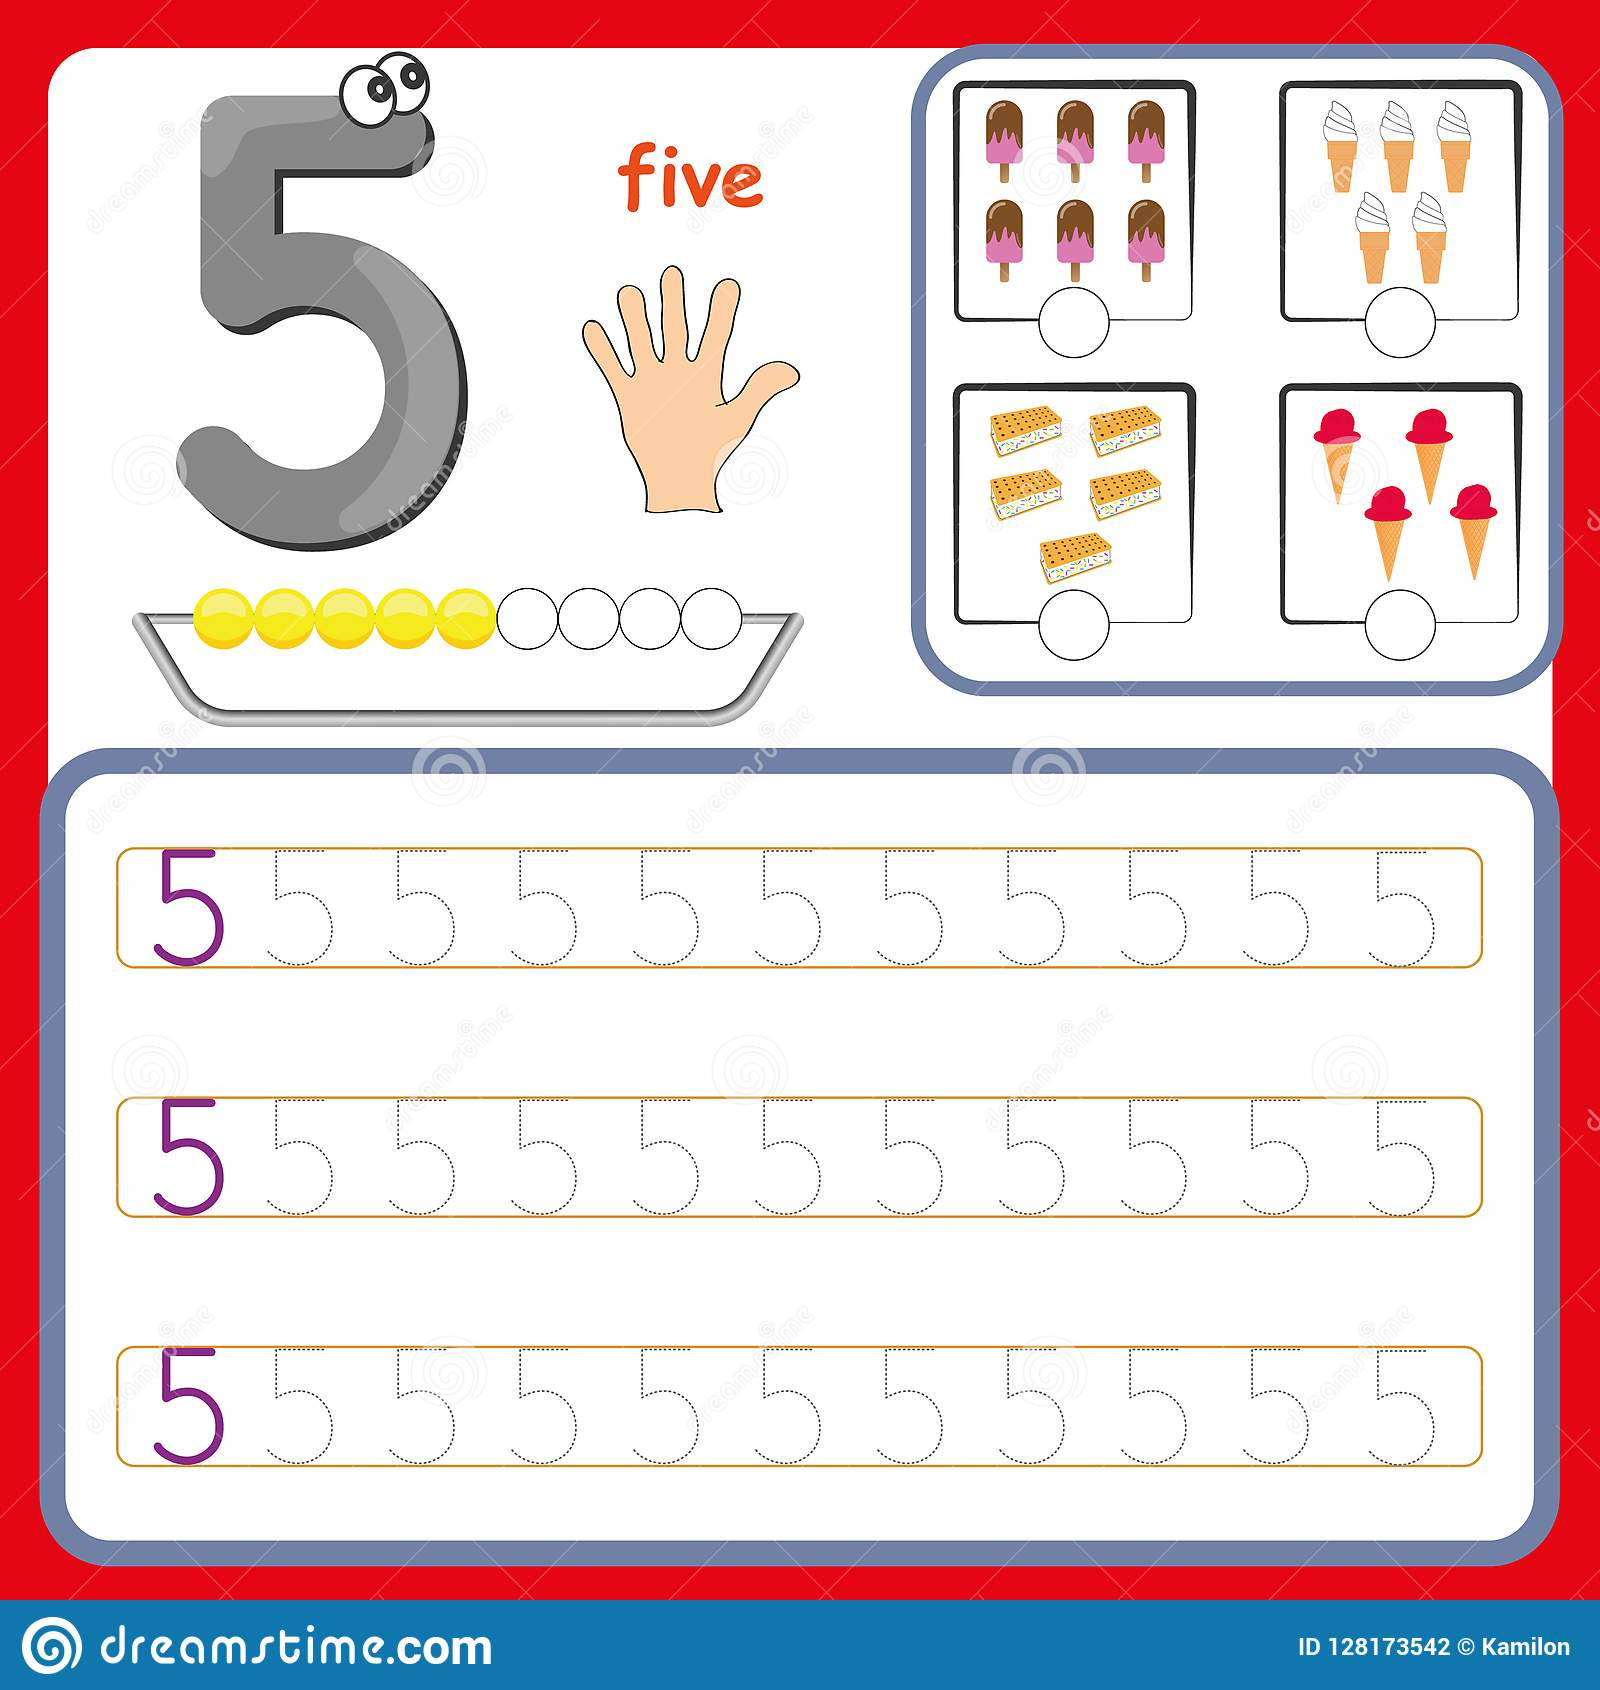 Preschool Number Tracing Number Cards Counting and Writing Numbers Learning Numbers